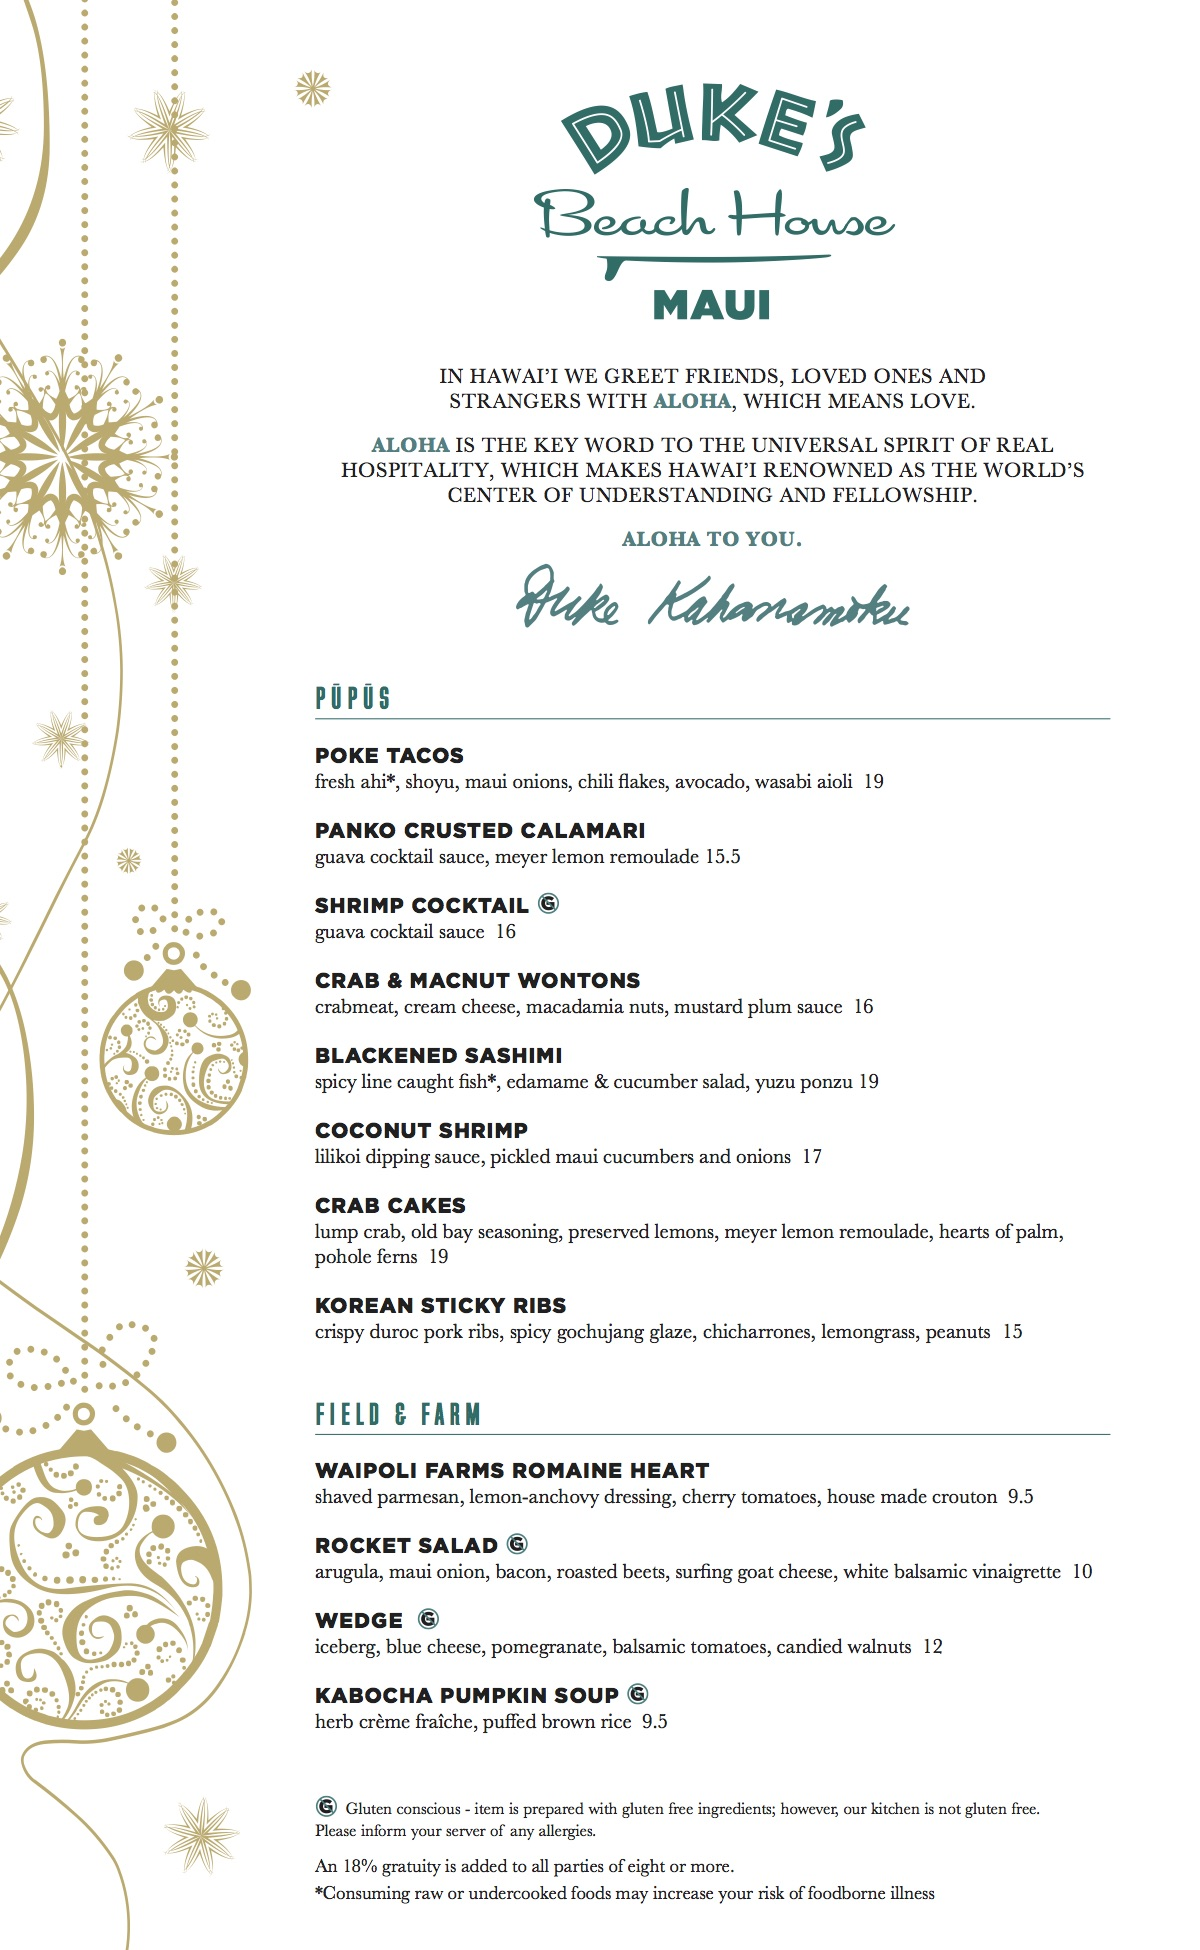 Holiday menu with pupus and field and farm